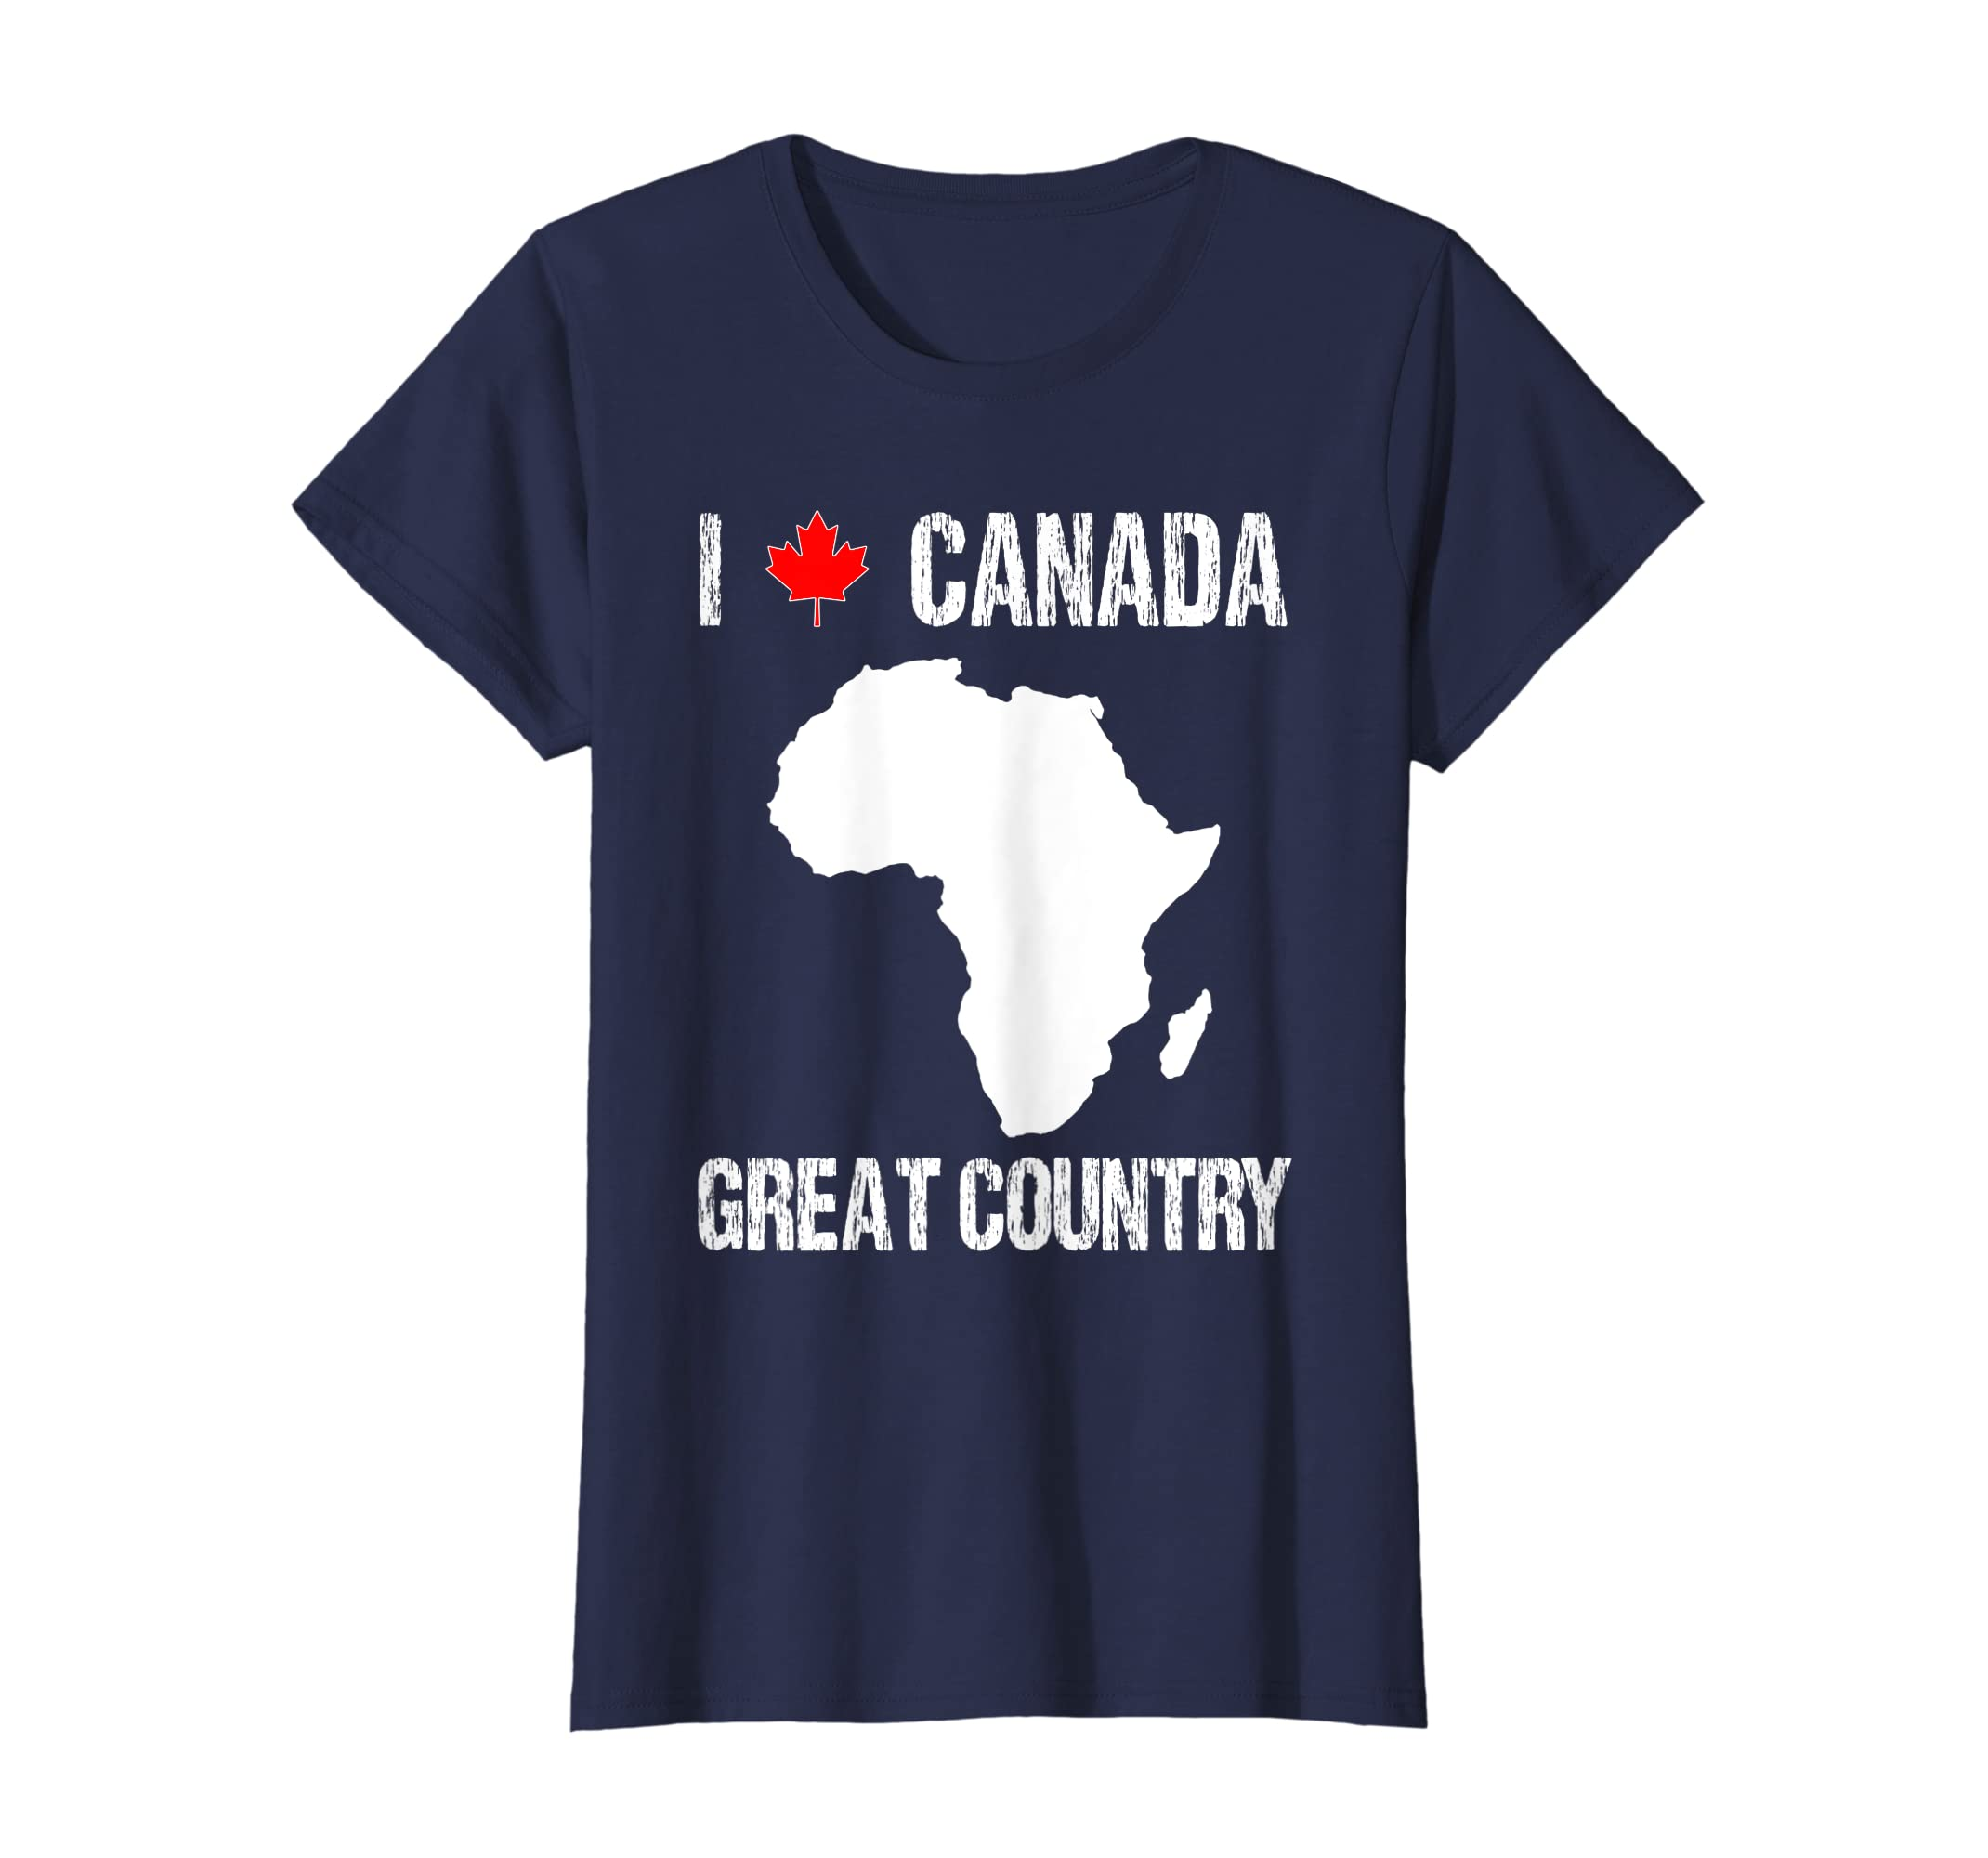 59f14ee4 Amazon.com: Funny Geography Tshirt Gift For Teachers Canada Prank Mix Up:  Clothing